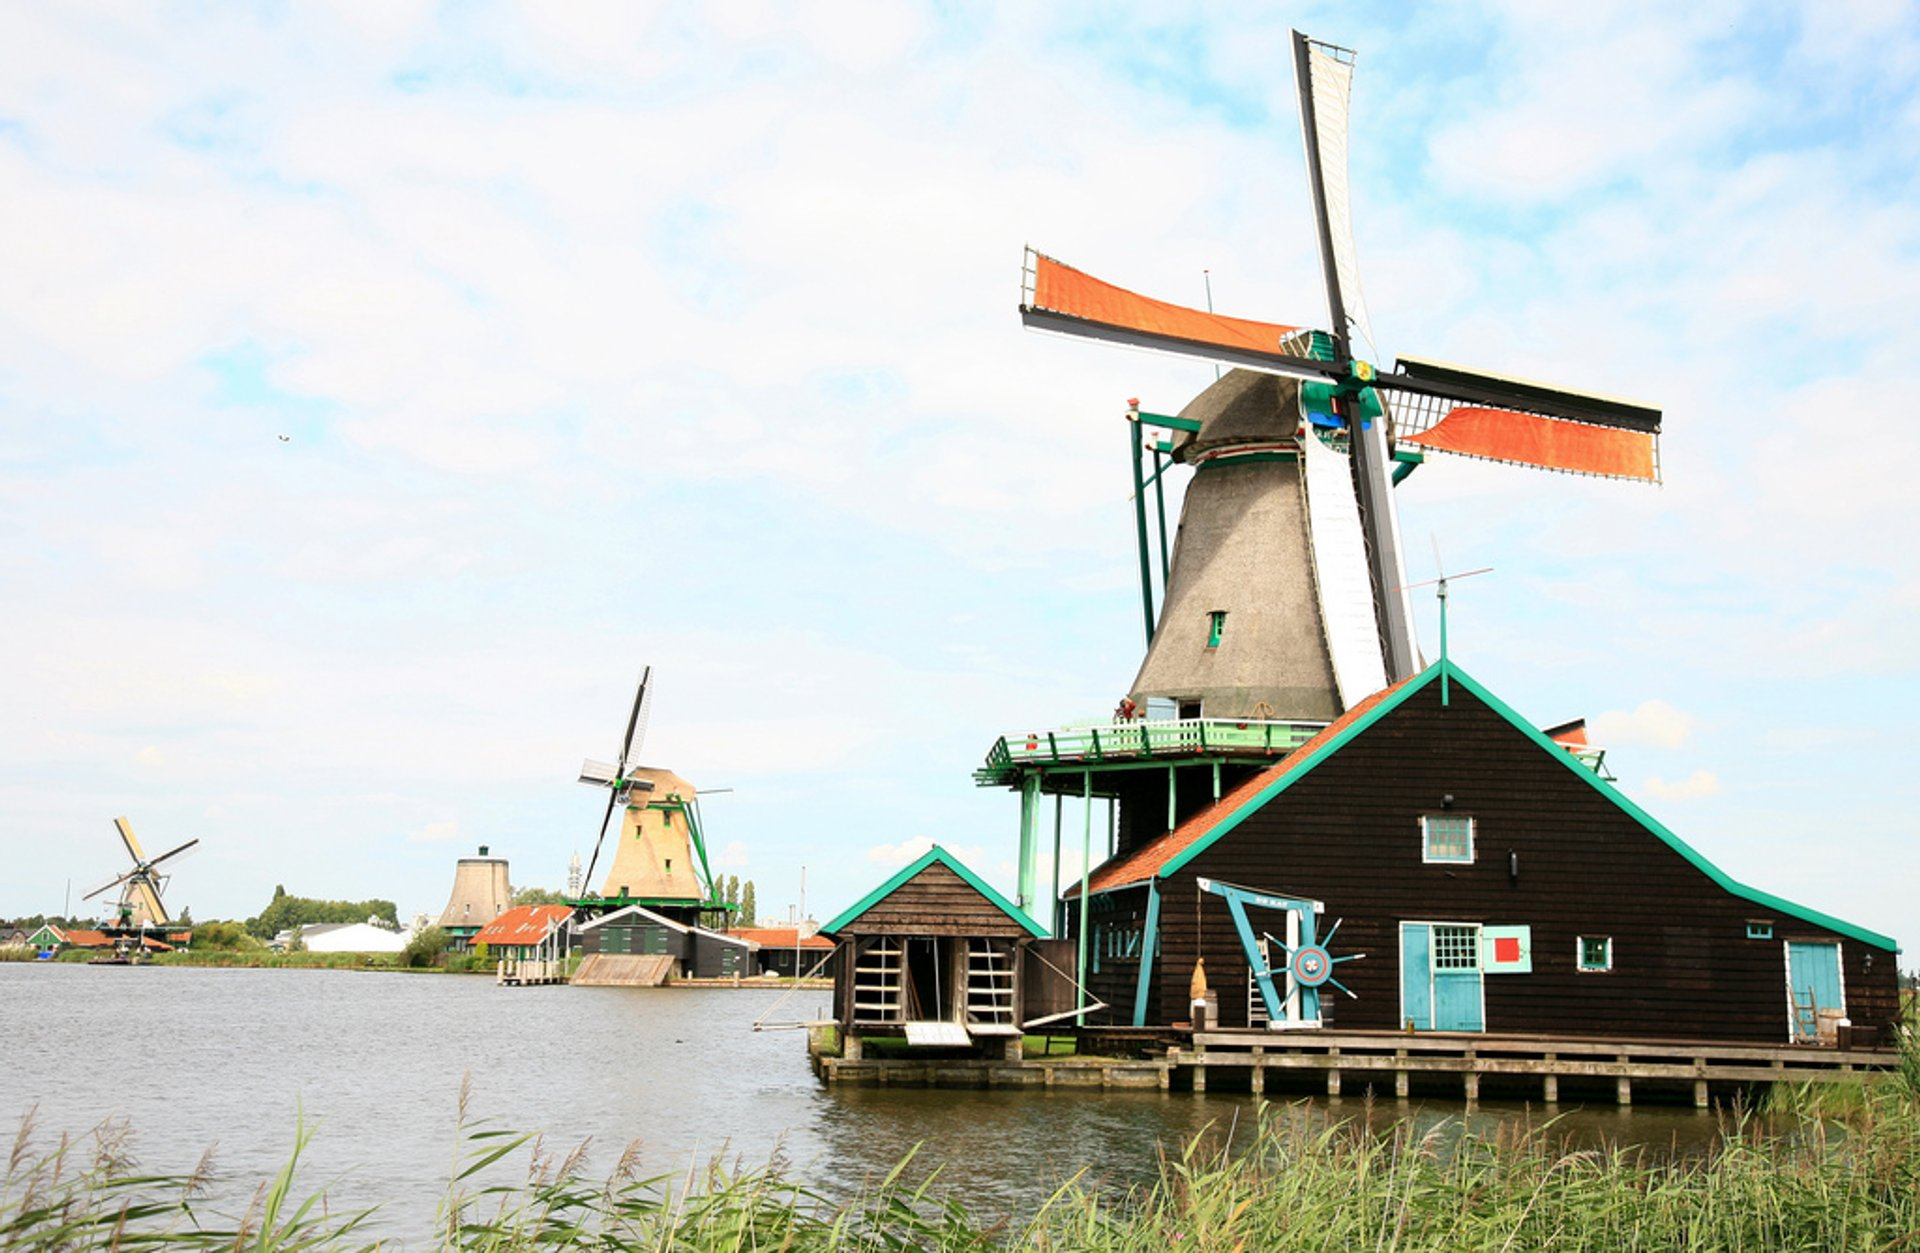 Dutch Countryside & Windmills in Amsterdam 2020 - Best Time